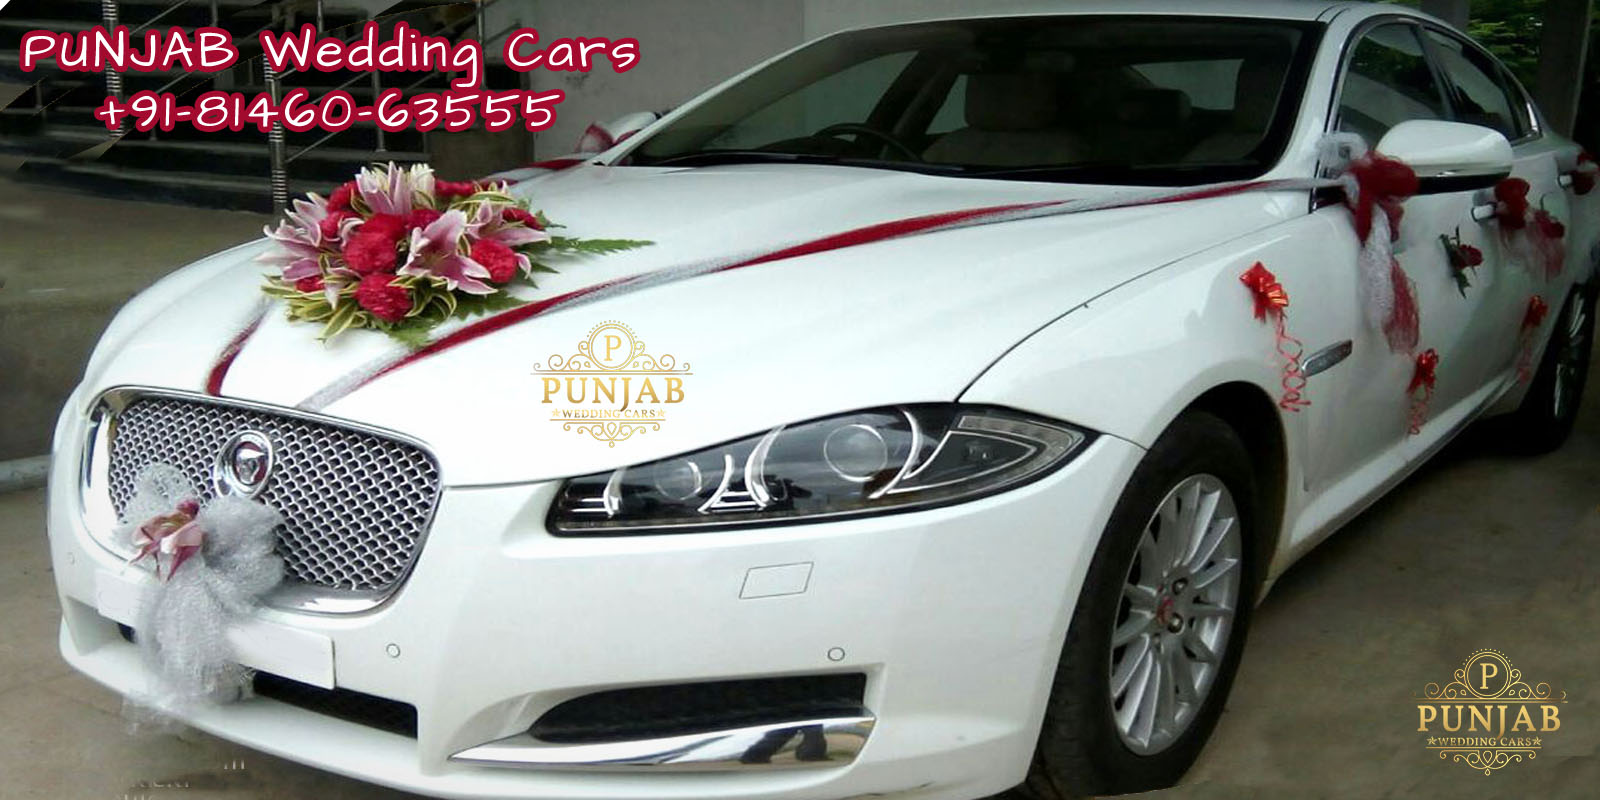 WEDDING CARS DECORATED AUDI FOR WEDDING DECORATED AUDI FOR - Audi car decoration